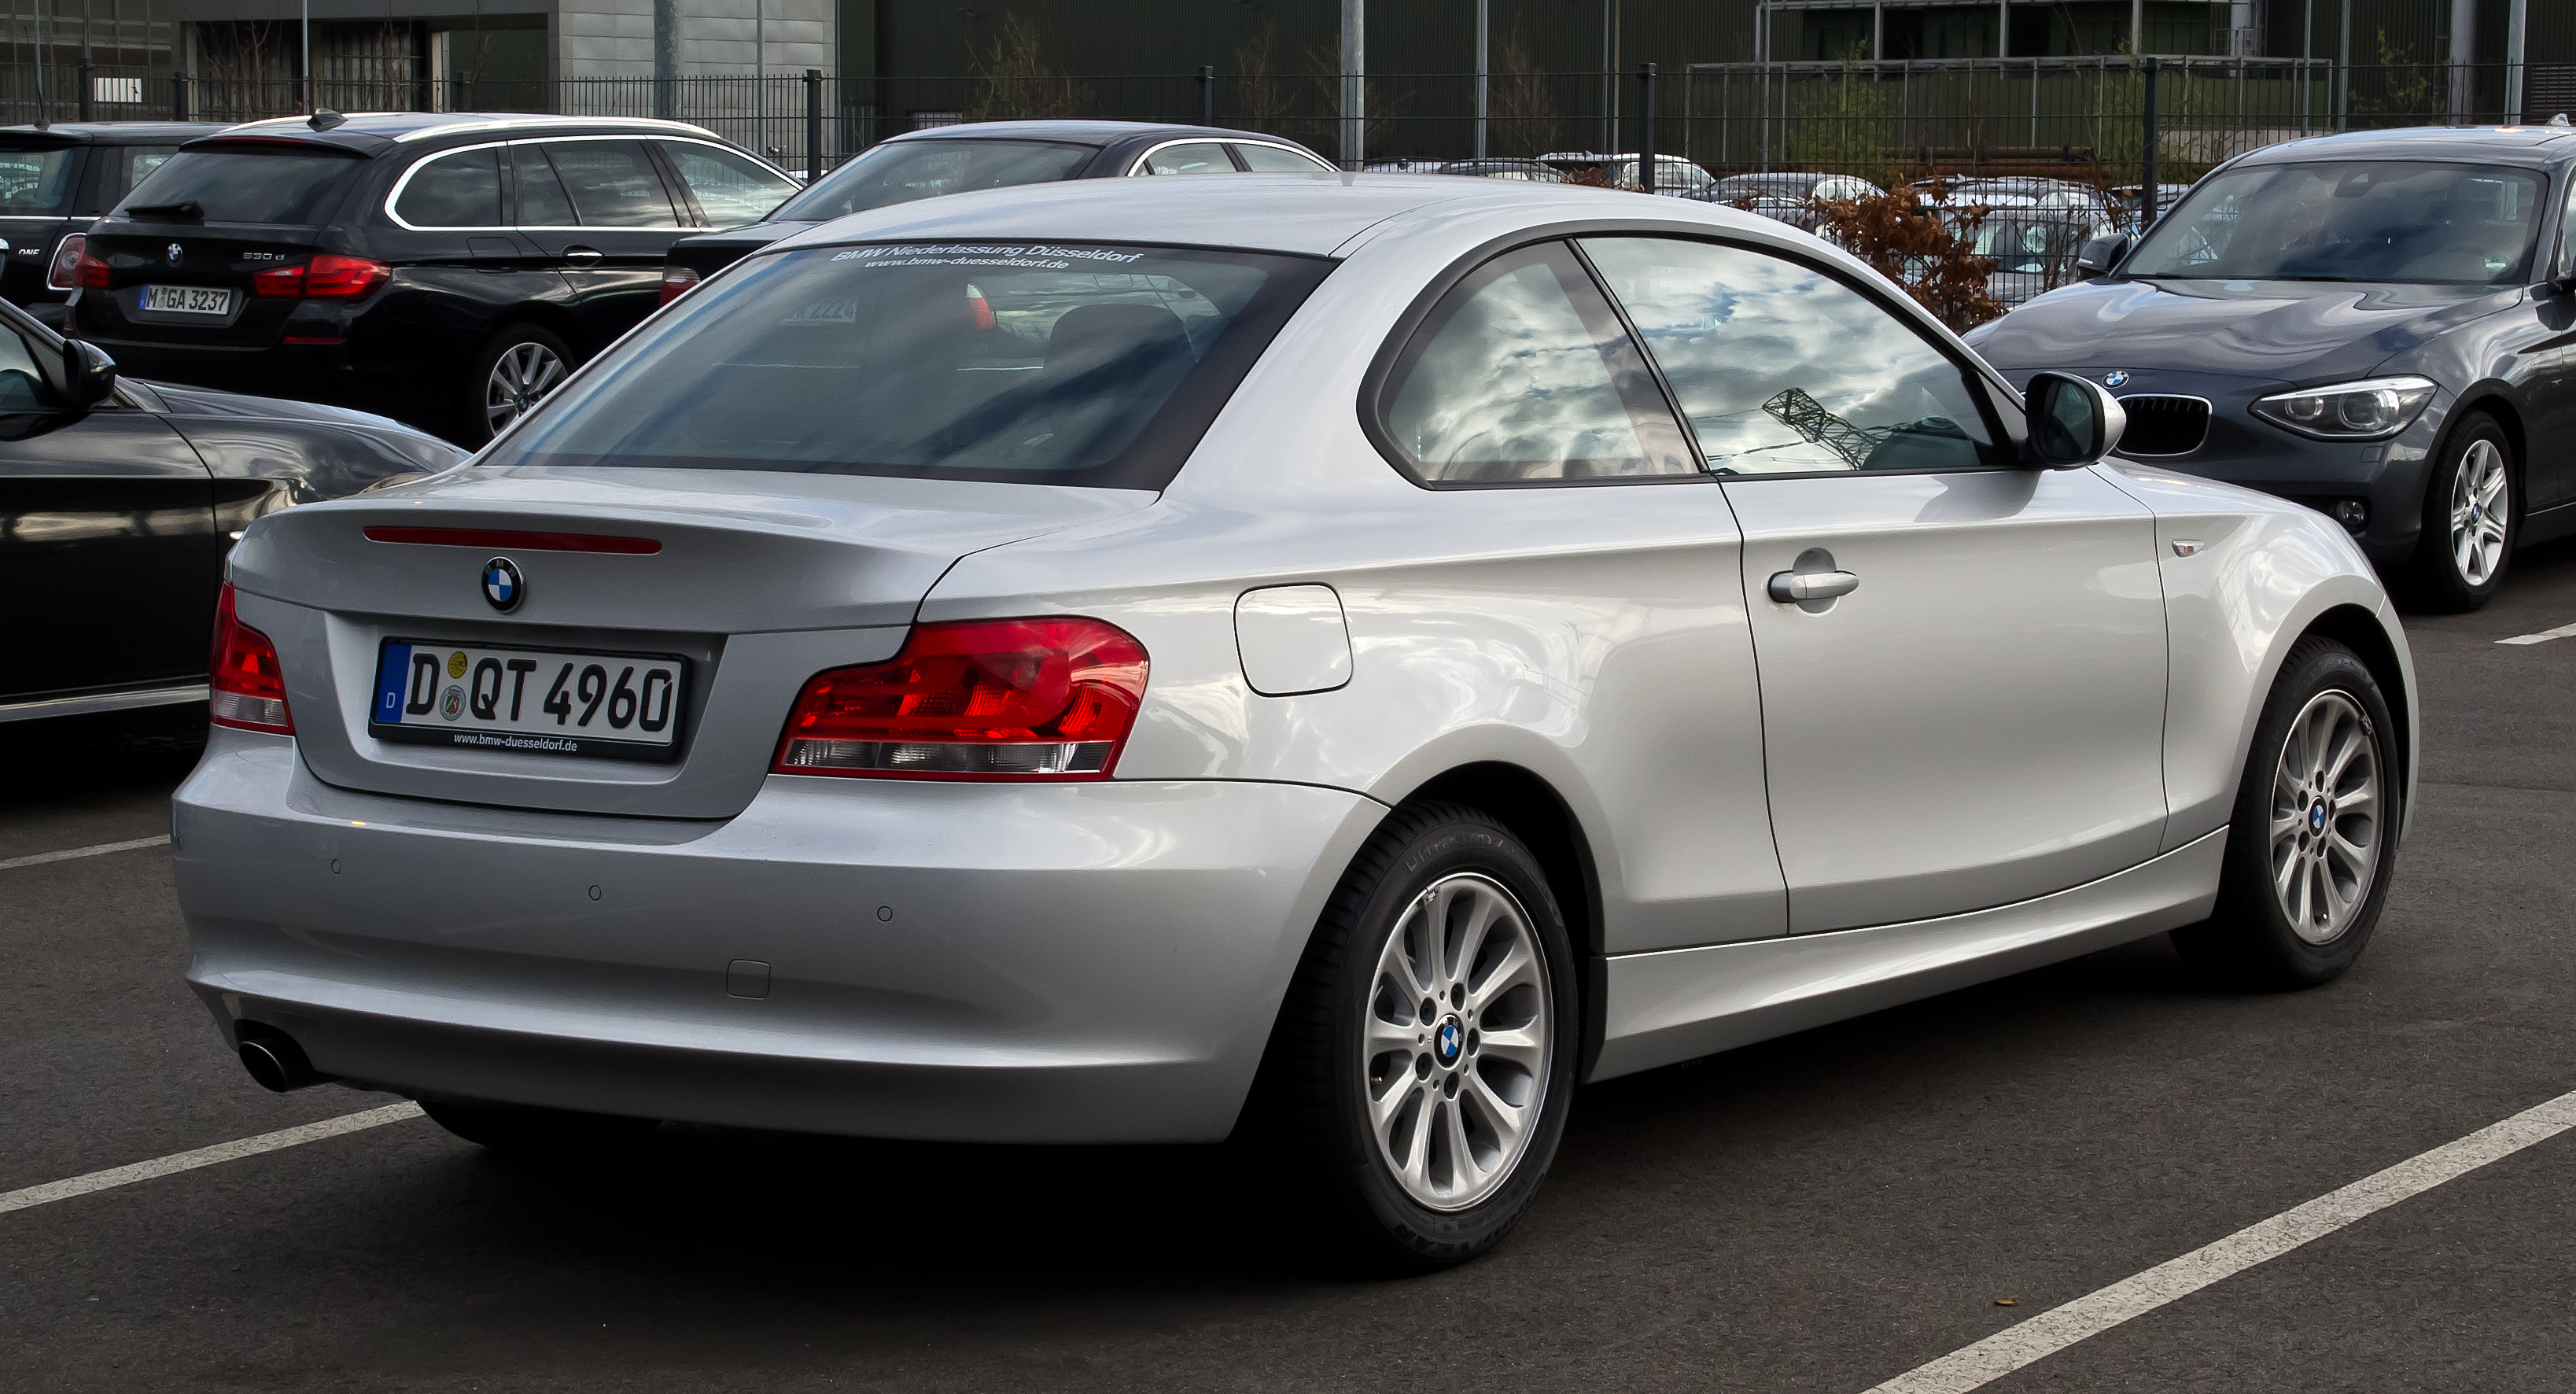 bmw 1er m coupe (e82) 2012 #15